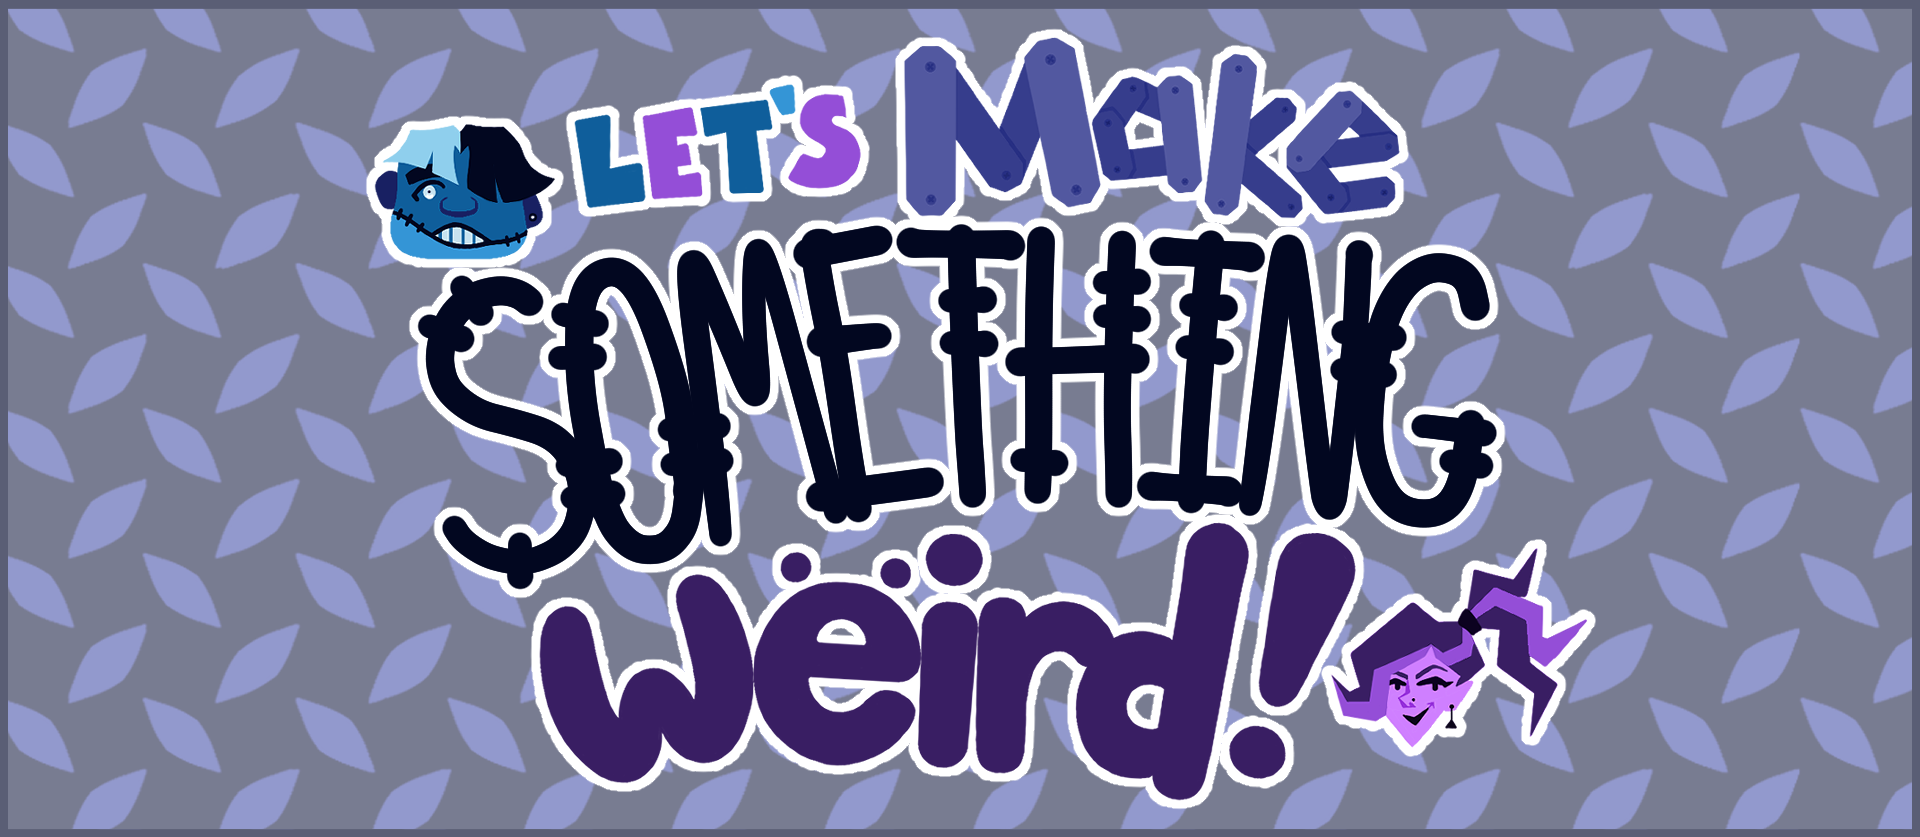 Let's Make Something Weird